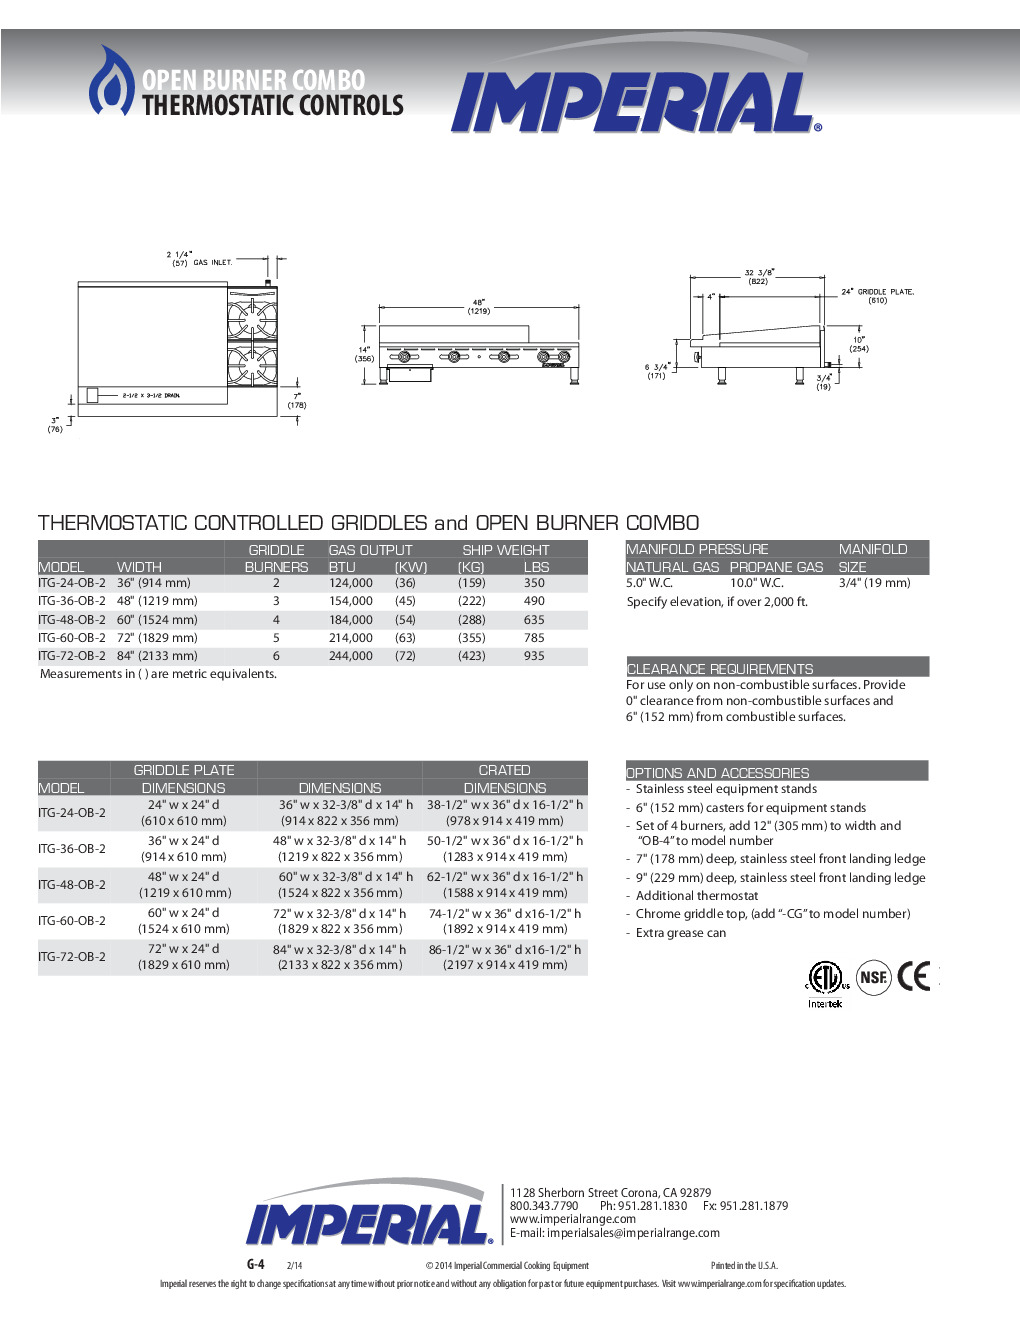 Imperial ITG-60-OB-2 72